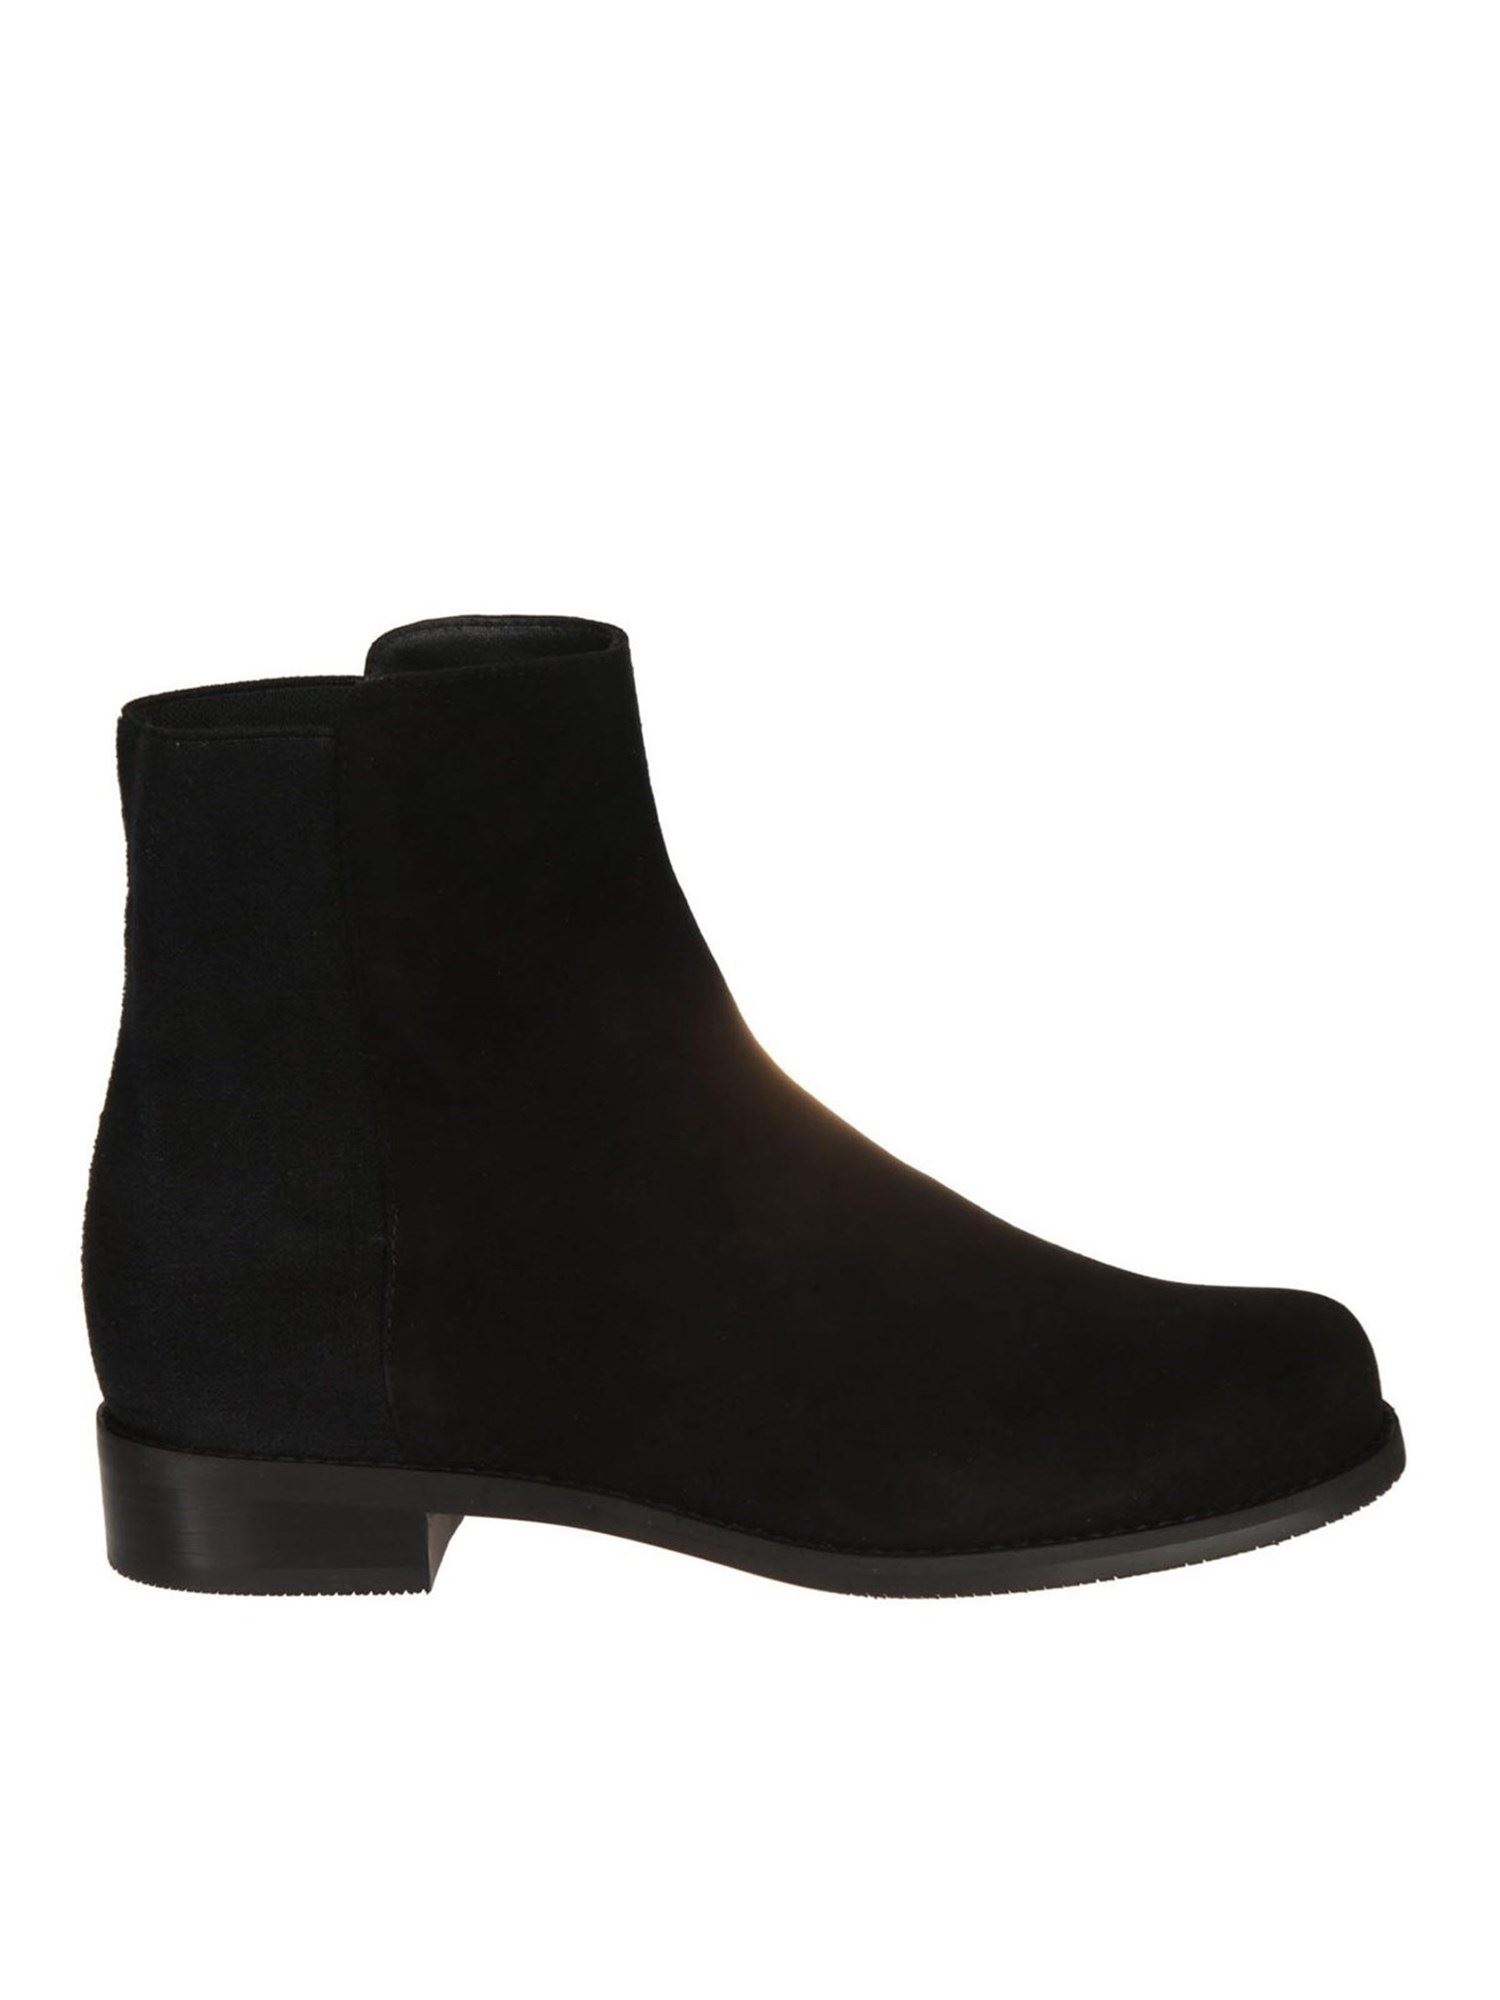 Stuart Weitzman EASY ON BLACK SUEDE BOOTIES